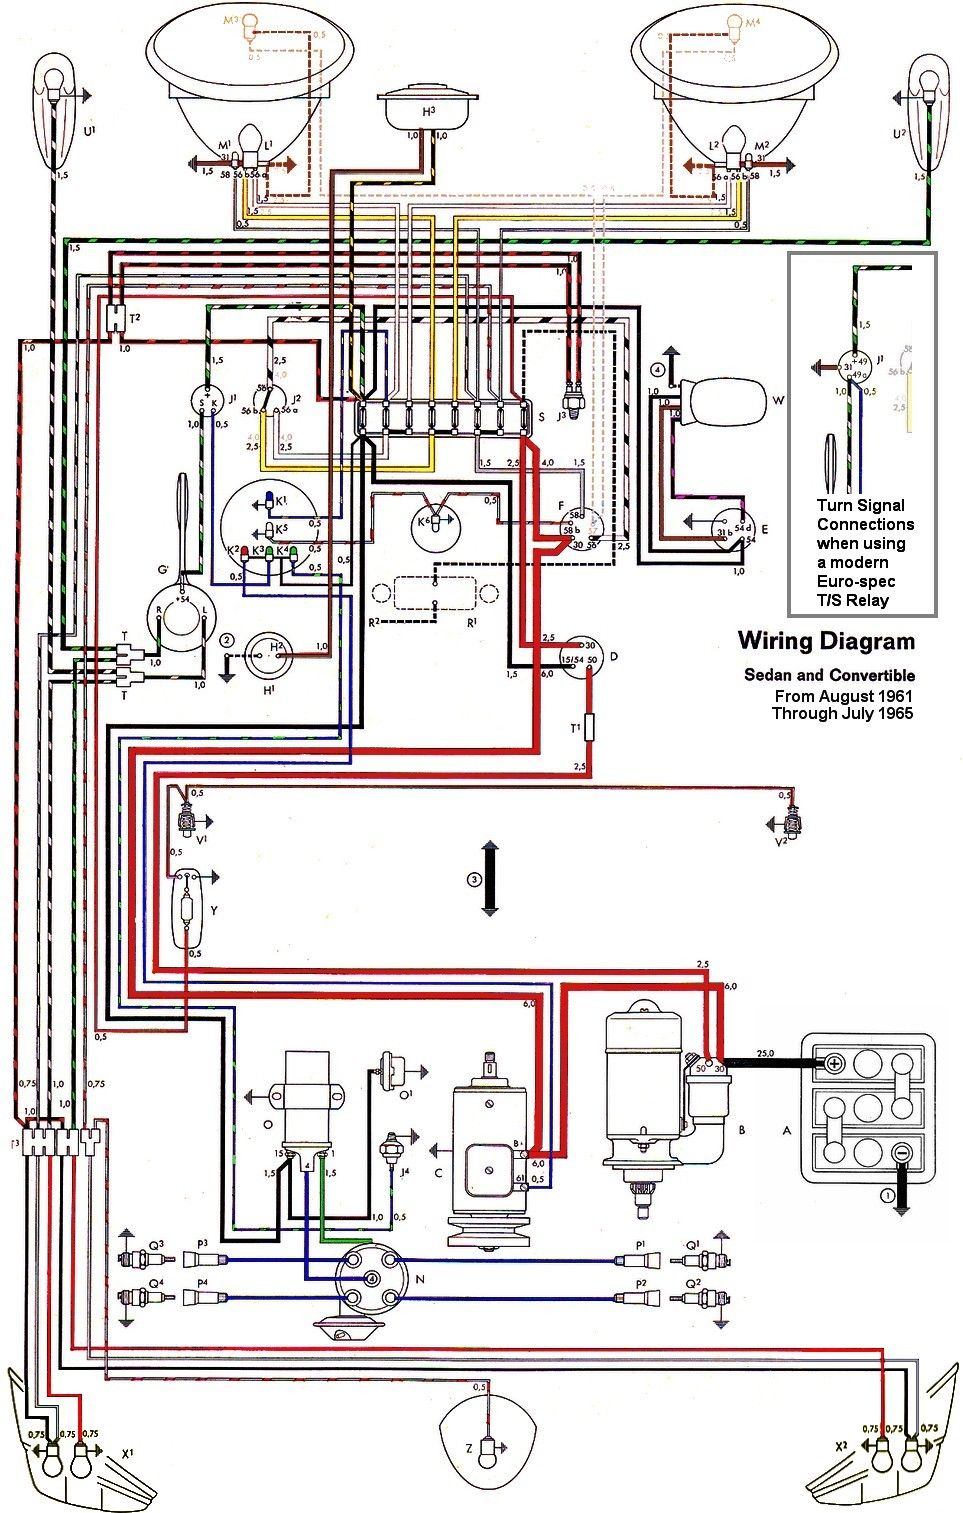 wiring diagram vw beetle sedan and convertible 1961 1965 vw in rh pinterest com vw wiring diagram symbols volkswagen wire diagram